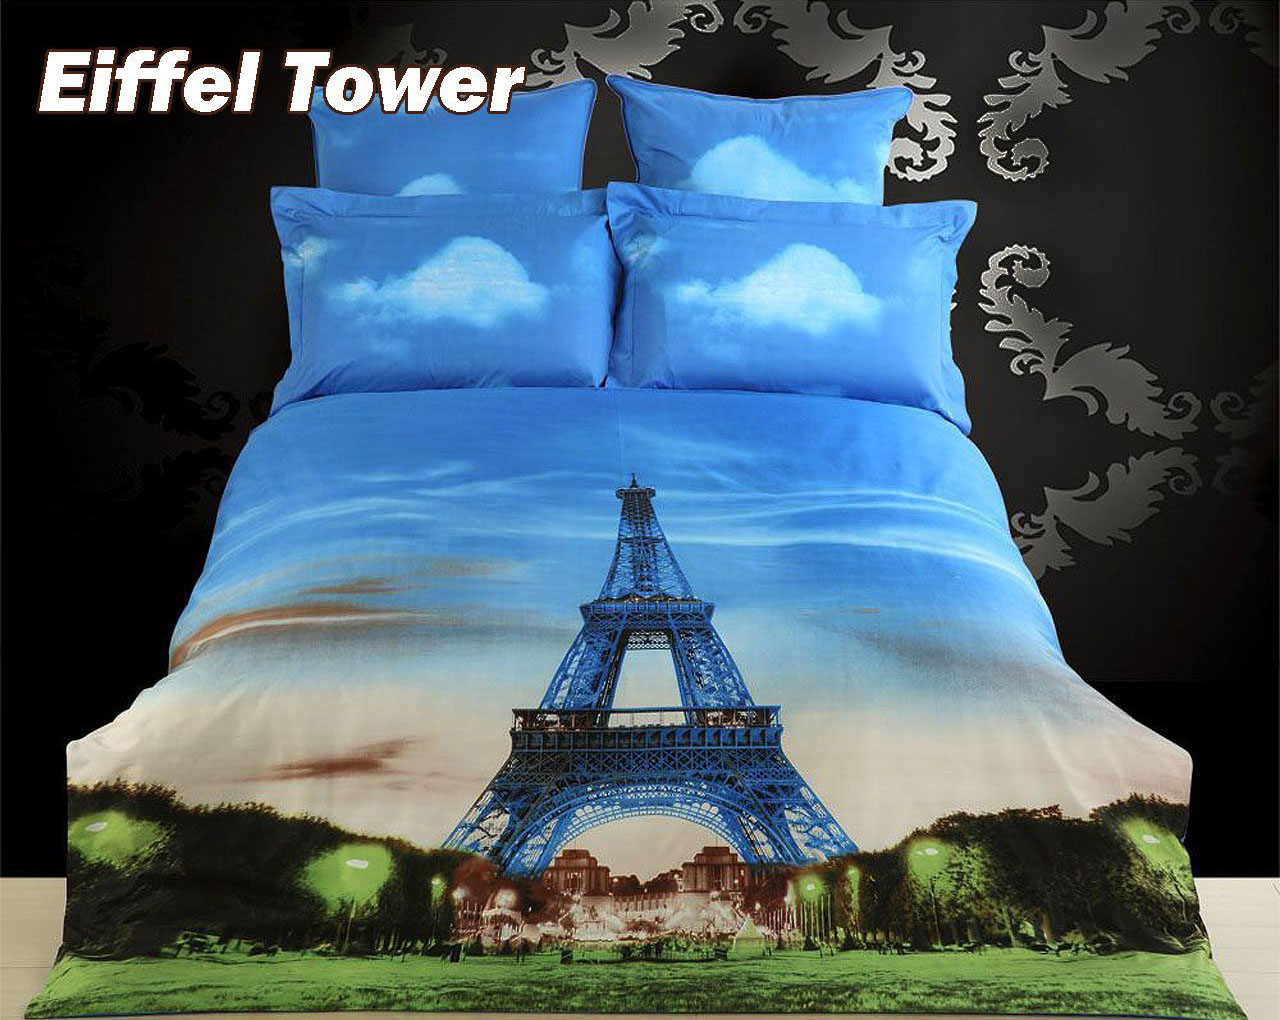 eiffel tower duvet cover - Eiffel Tower Decor For Bedroom